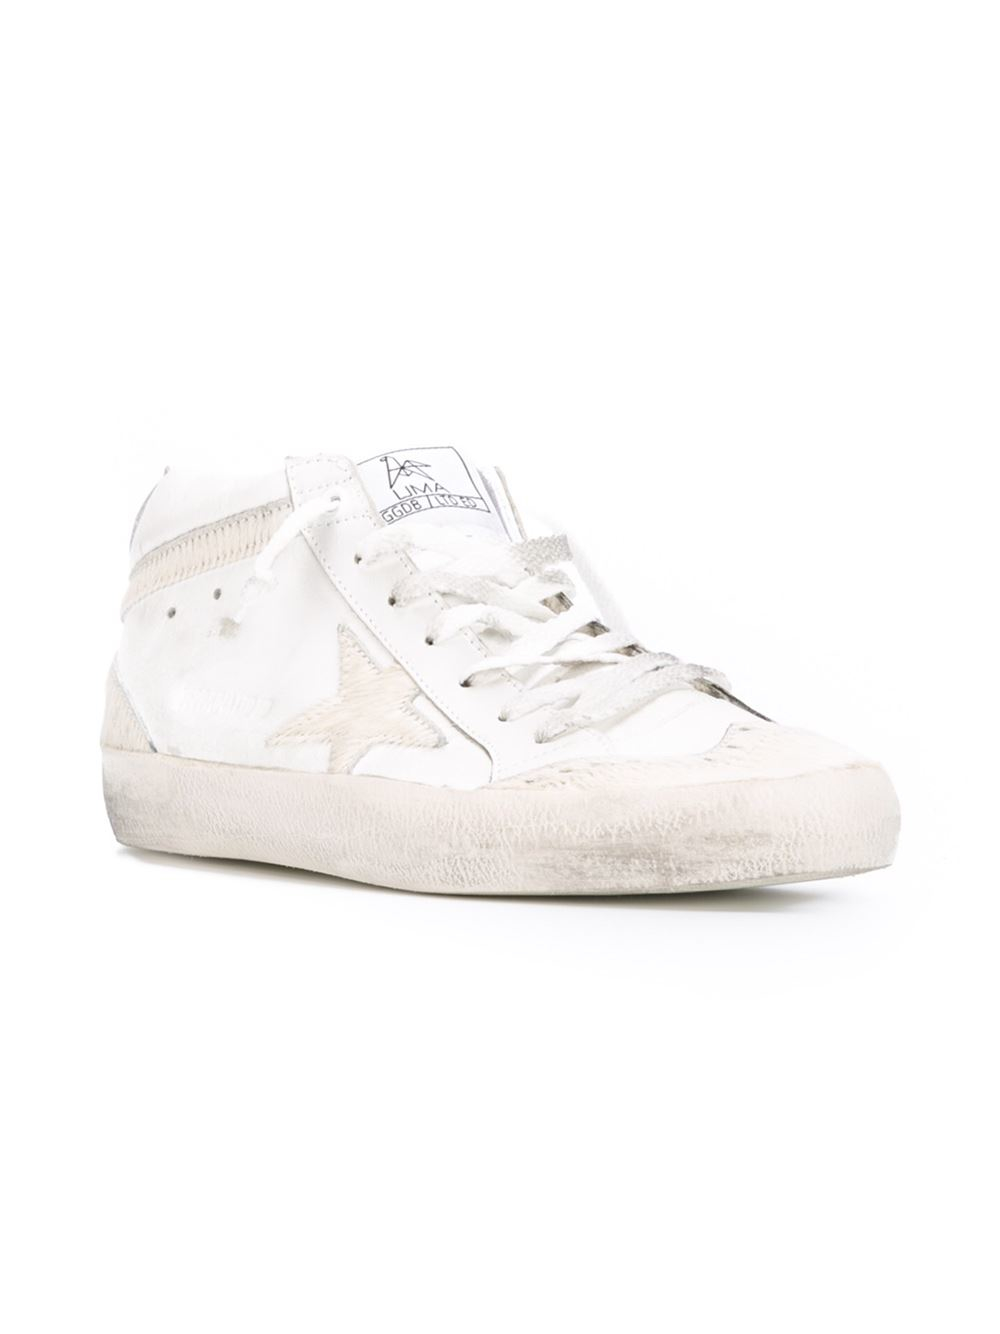 Golden Goose Deluxe Brand Limited Edition 'mid Star' Sneakers in Natural